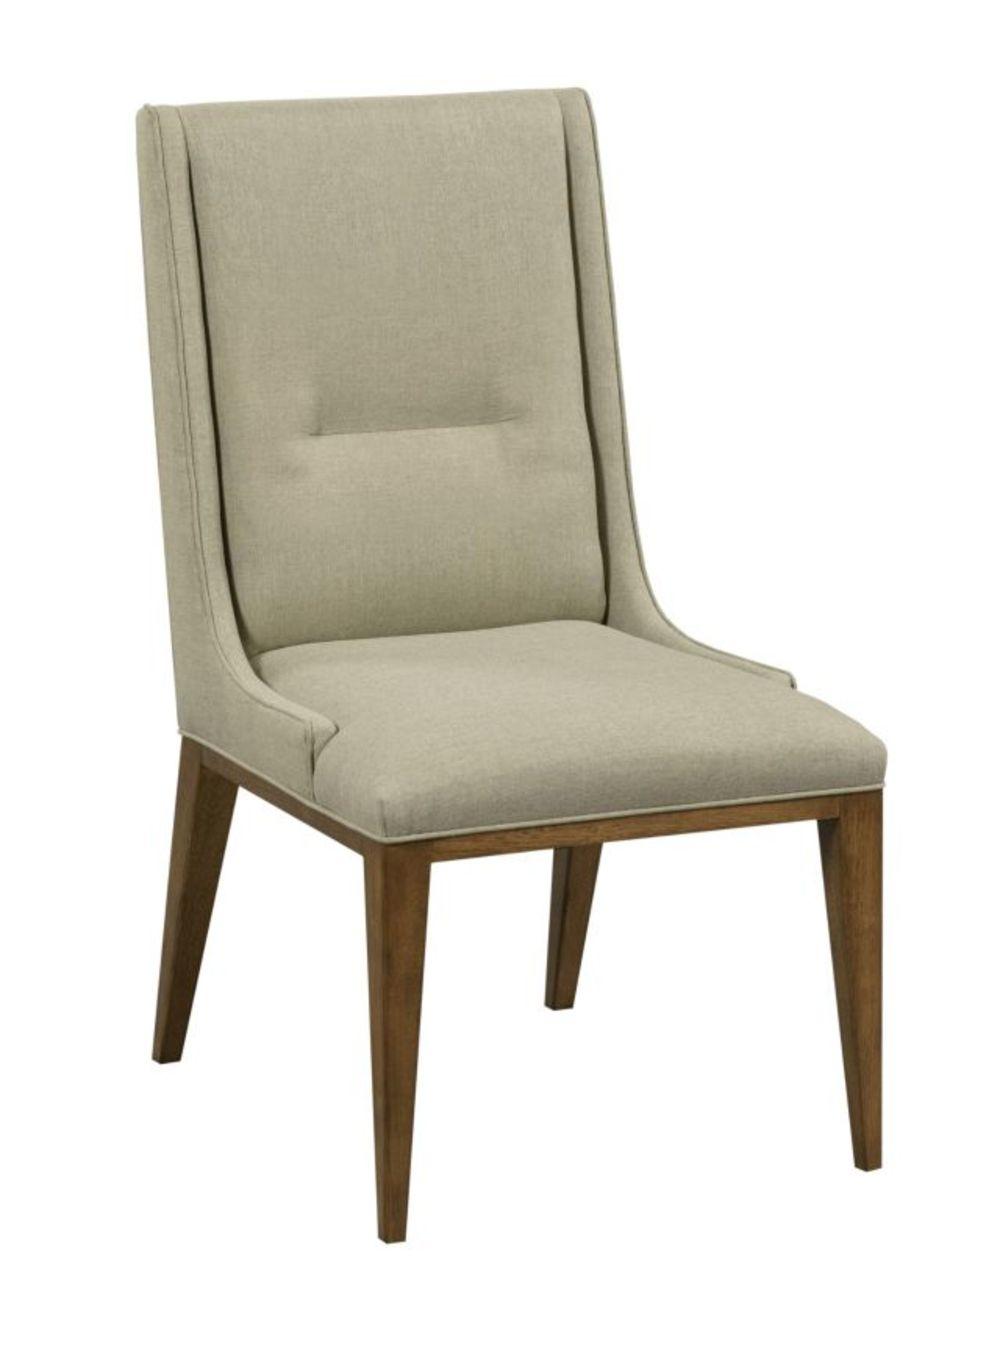 Hammary Furniture - Contour Side Chair